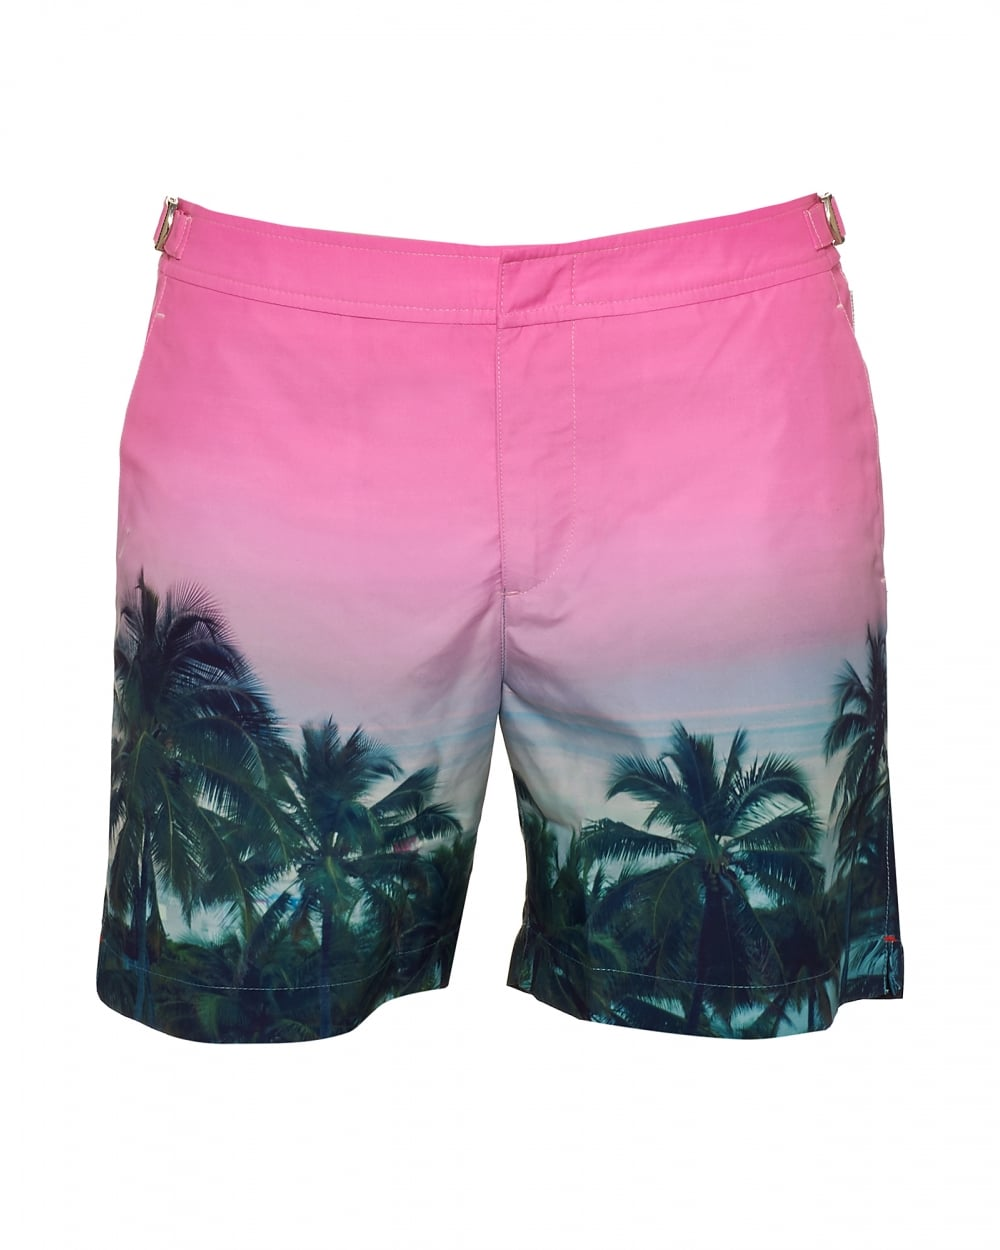 1a15ac1ccf Orlebar Brown Mens Bulldog Palms Aplenty Swim Shorts, Pink ...